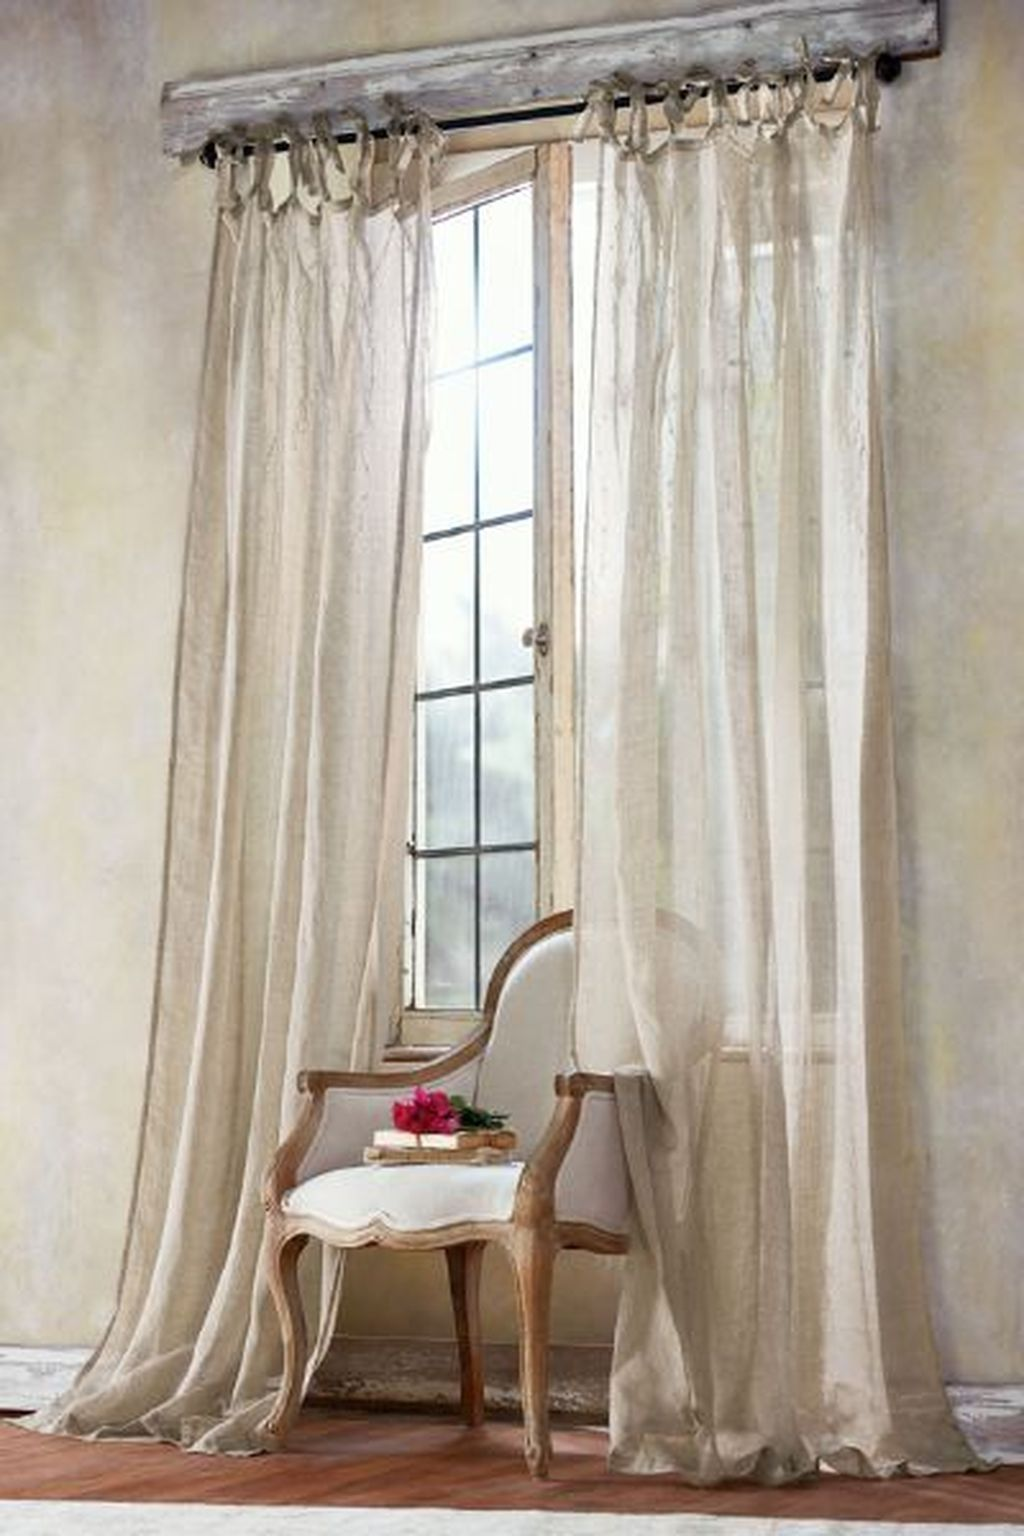 Decoomo Trends Home Decoration Ideas French Country Curtains French Country Living Room Country Living Room French country living room curtains